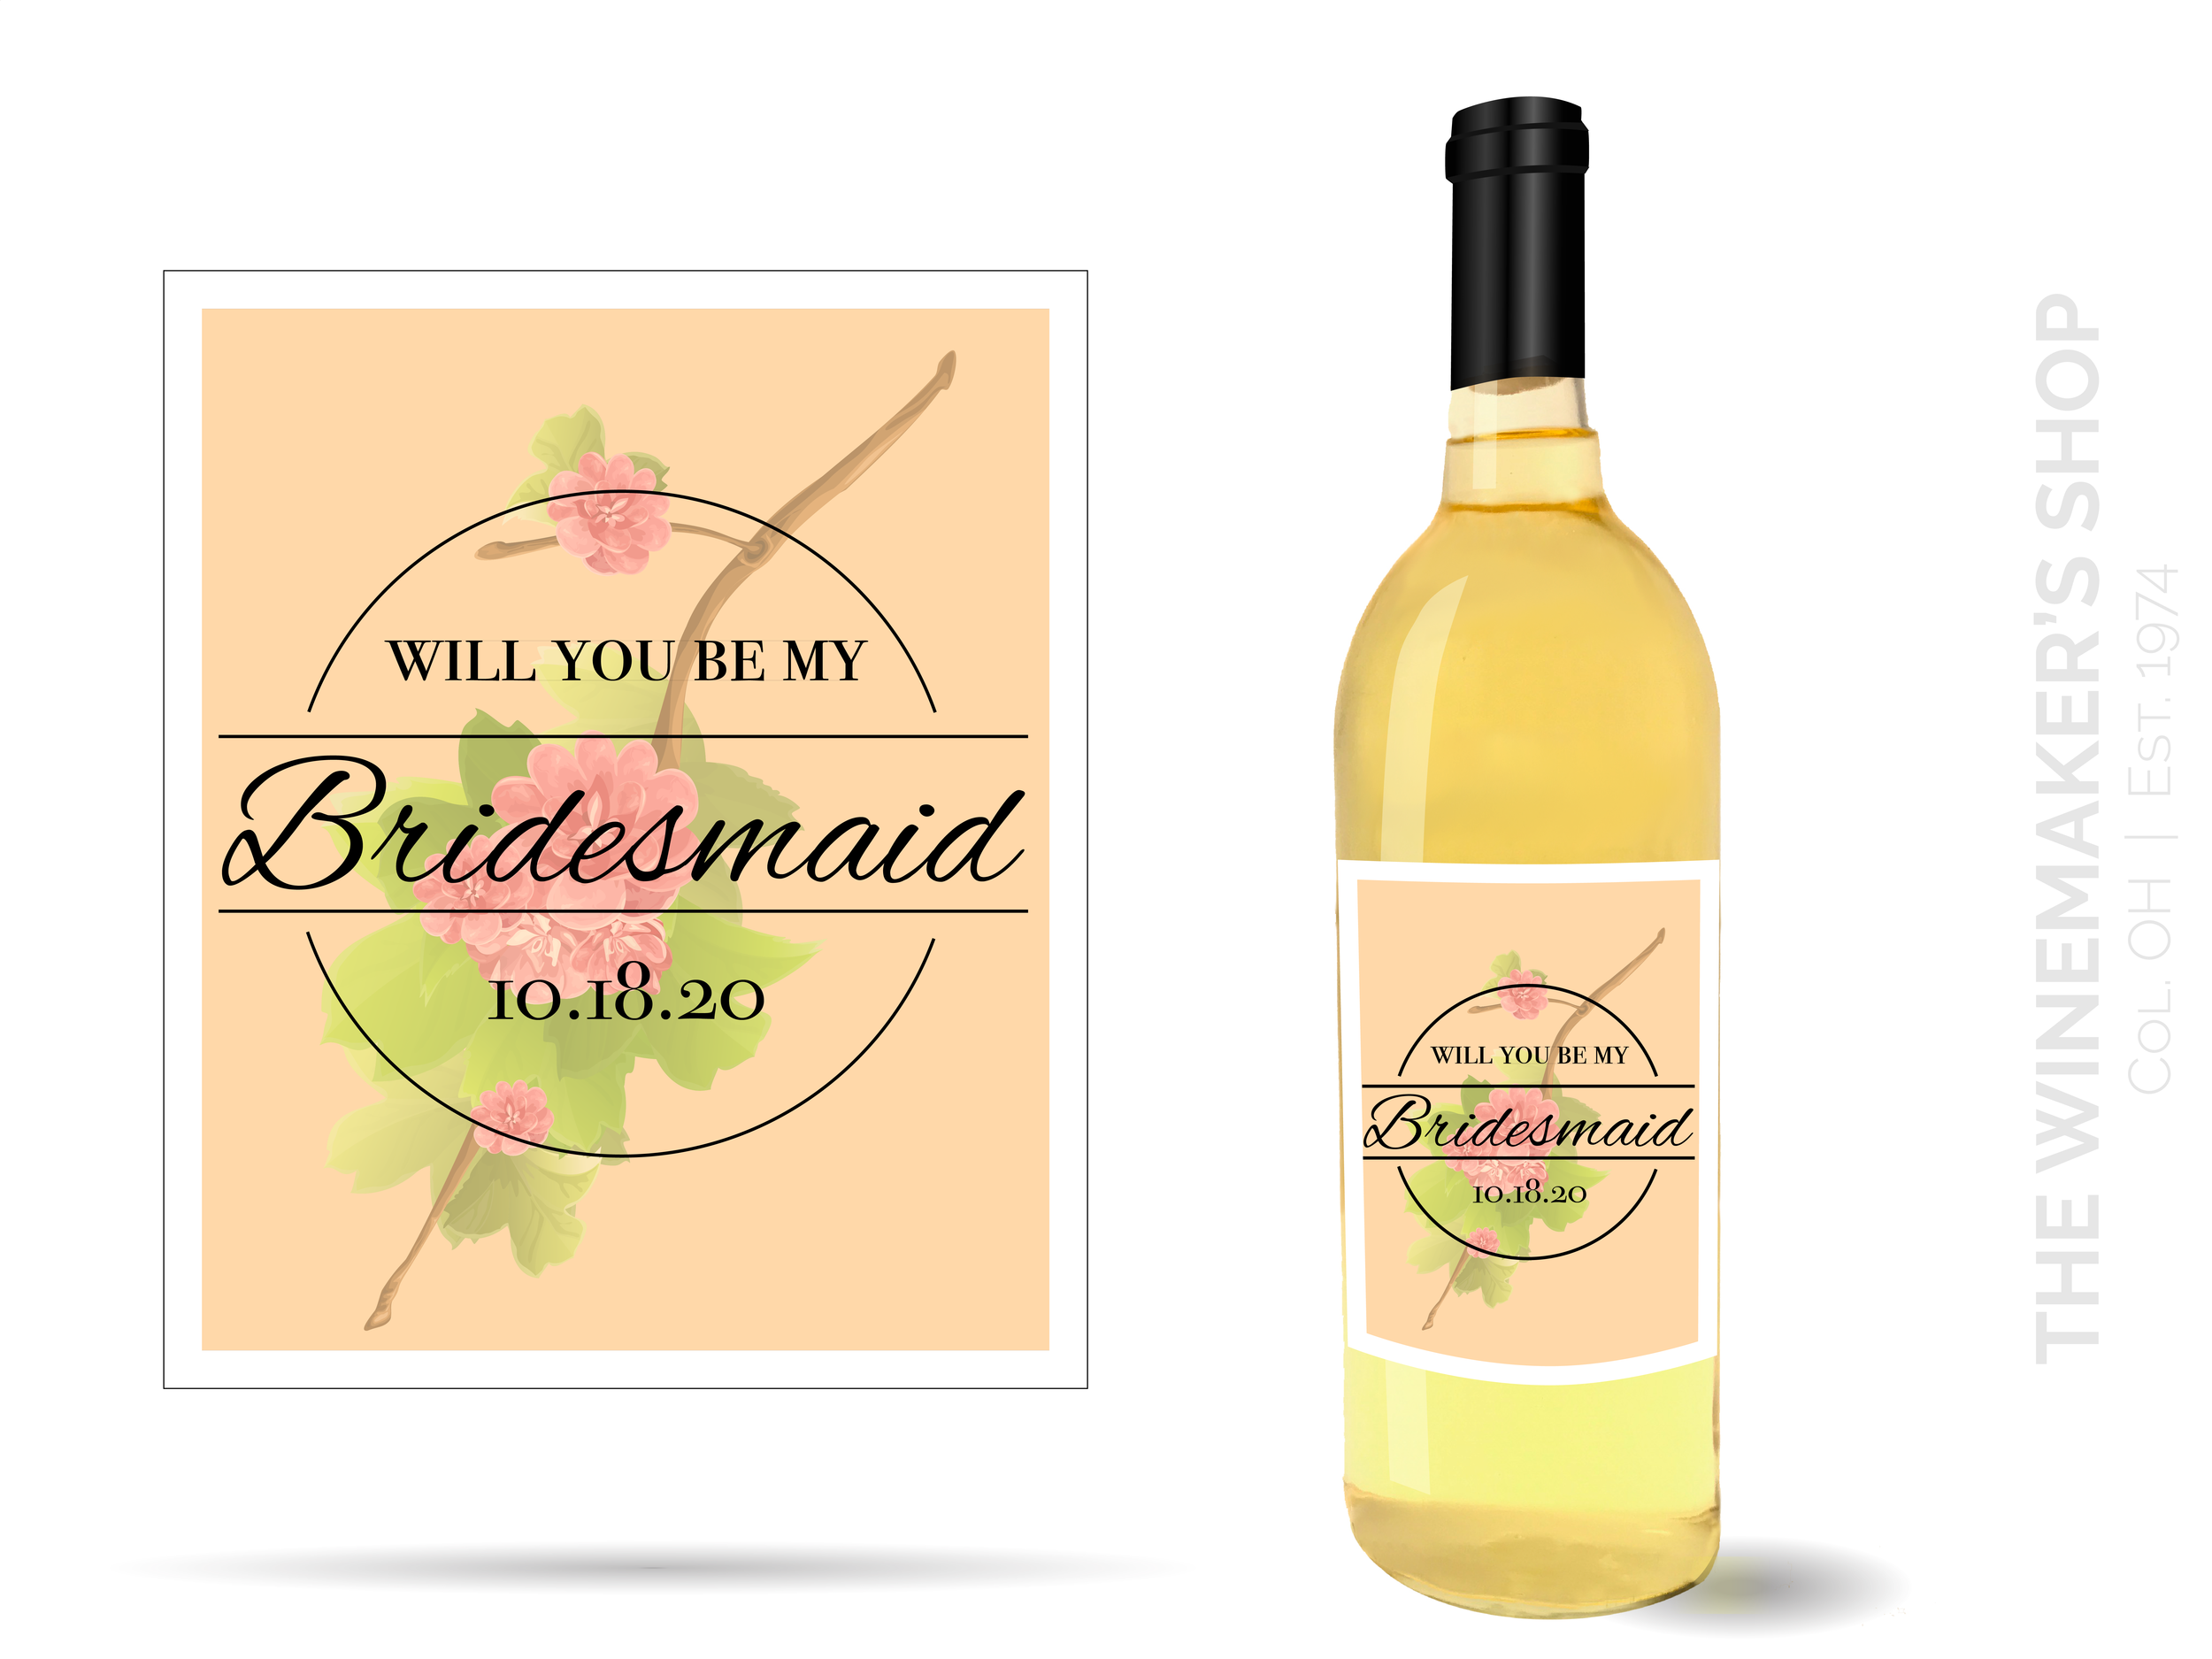 example-labels-clear-bordeaux-02.png